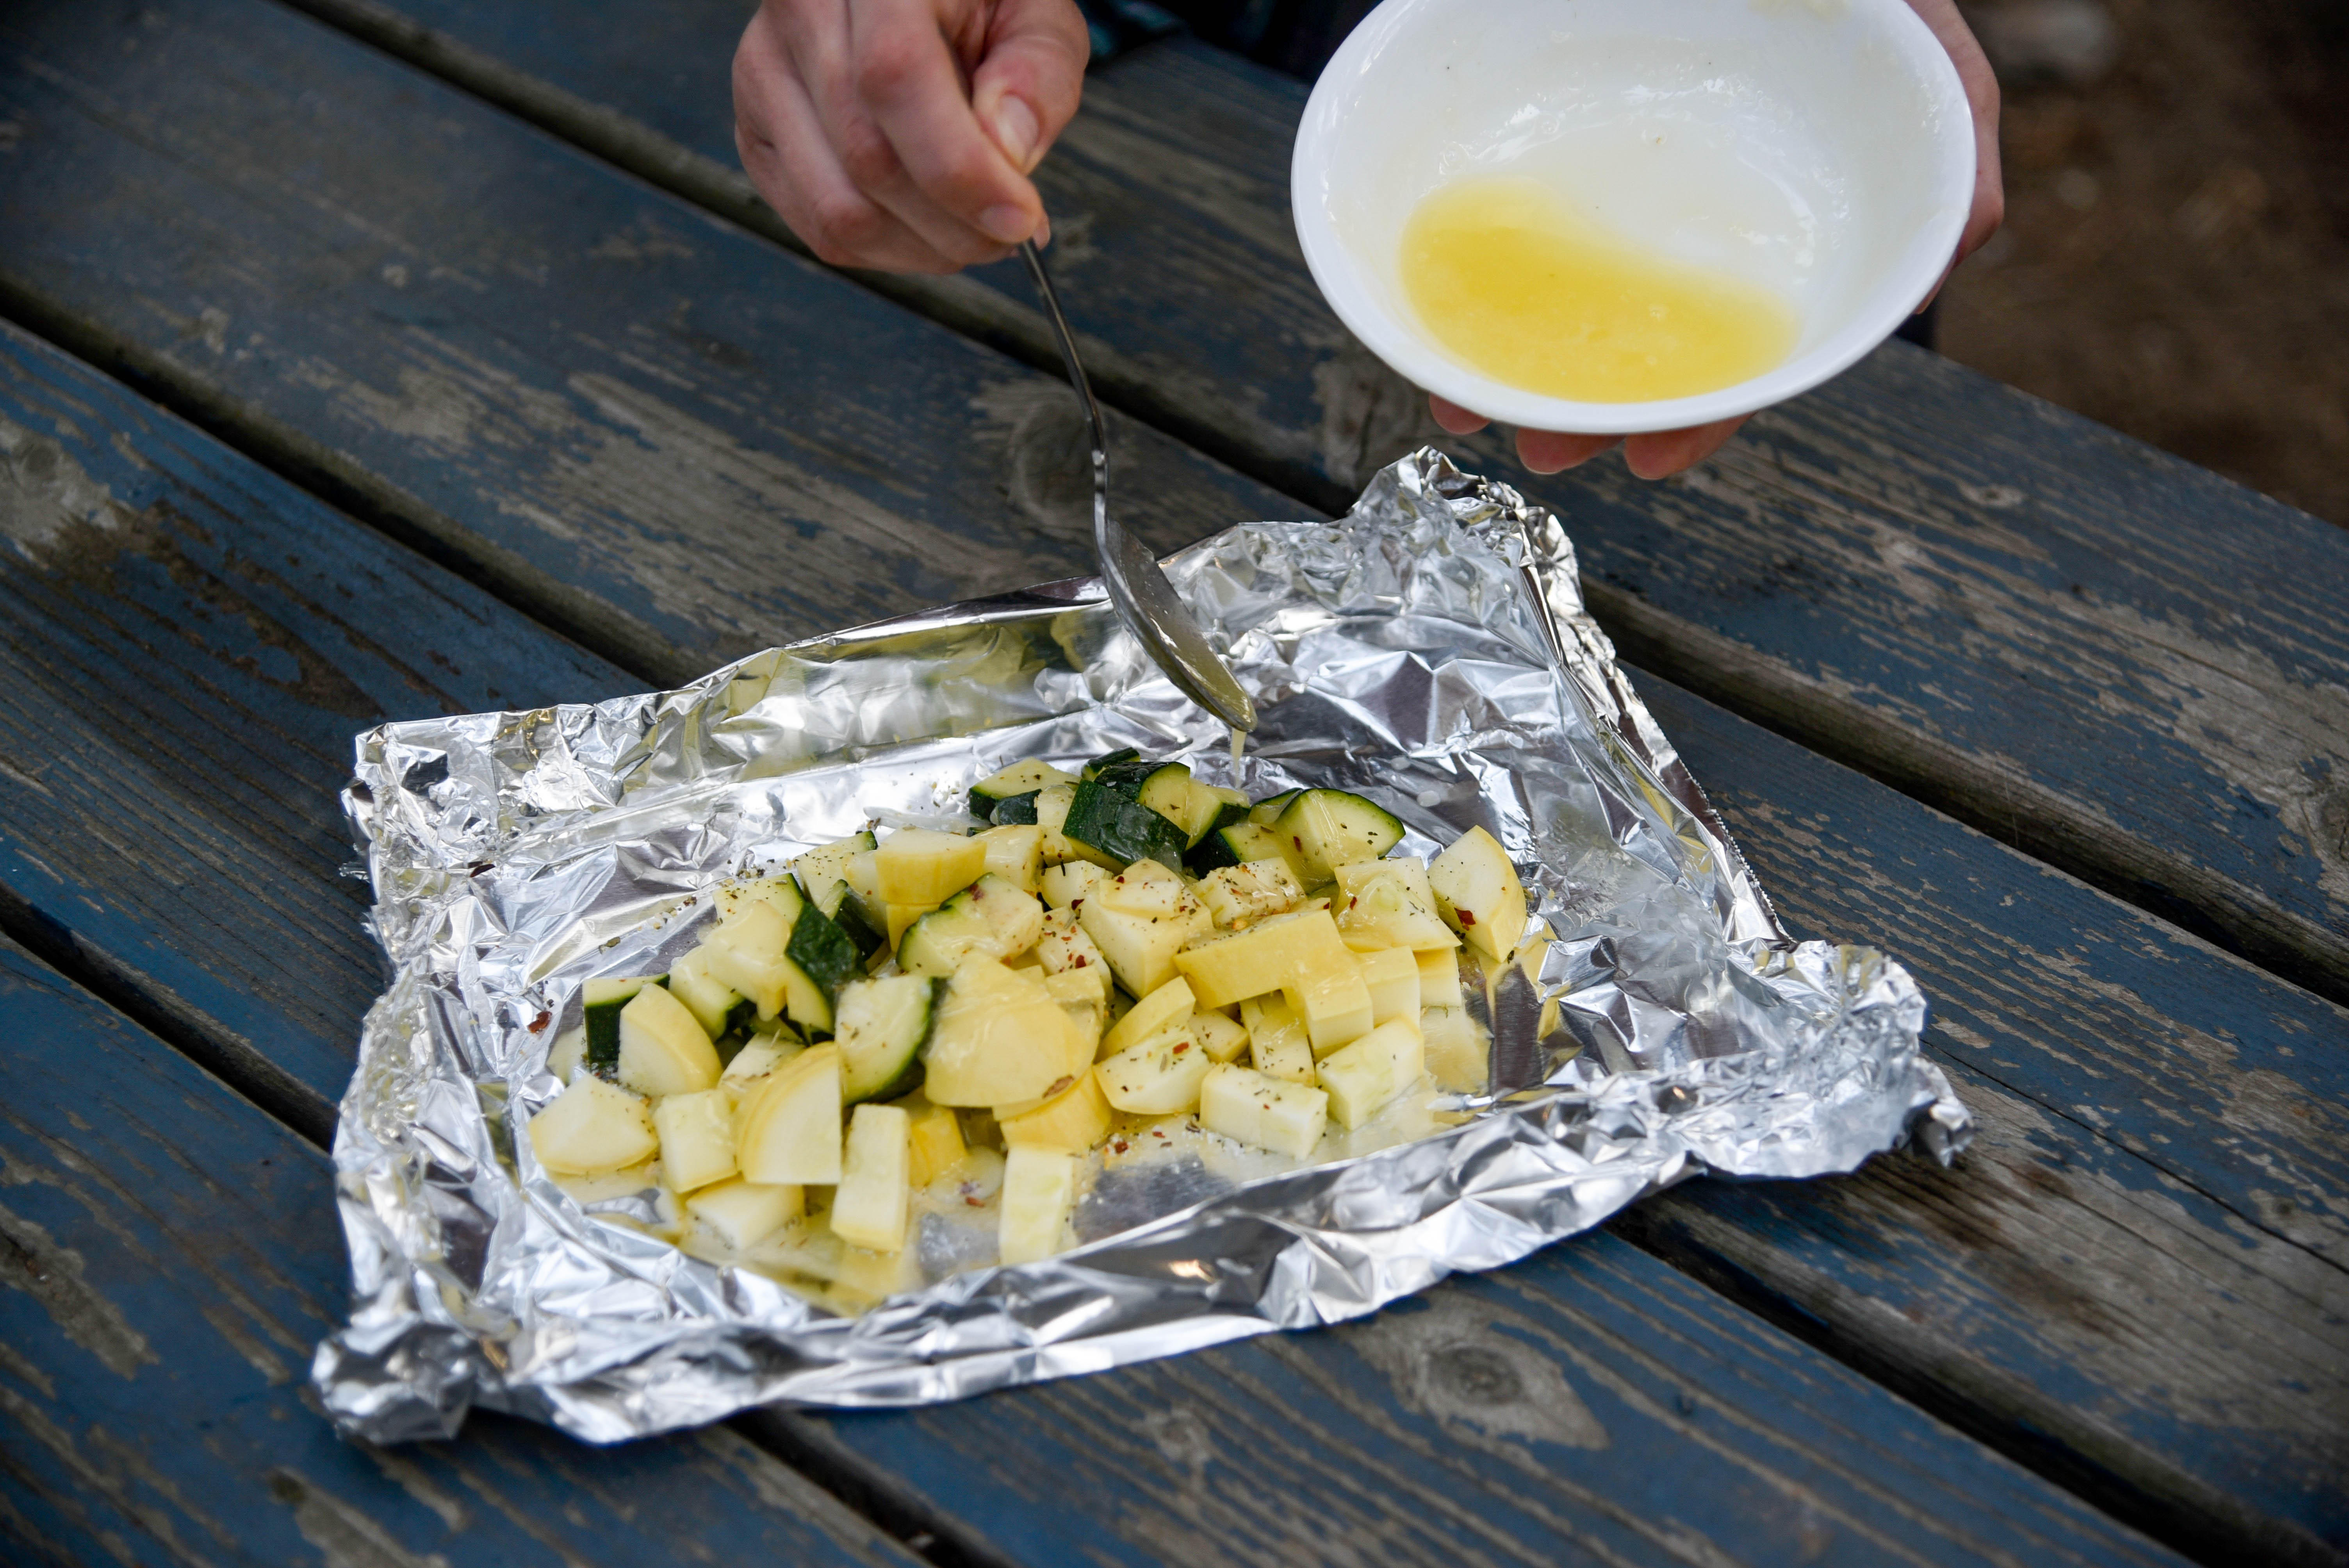 Pouring butter on chopped zucchini